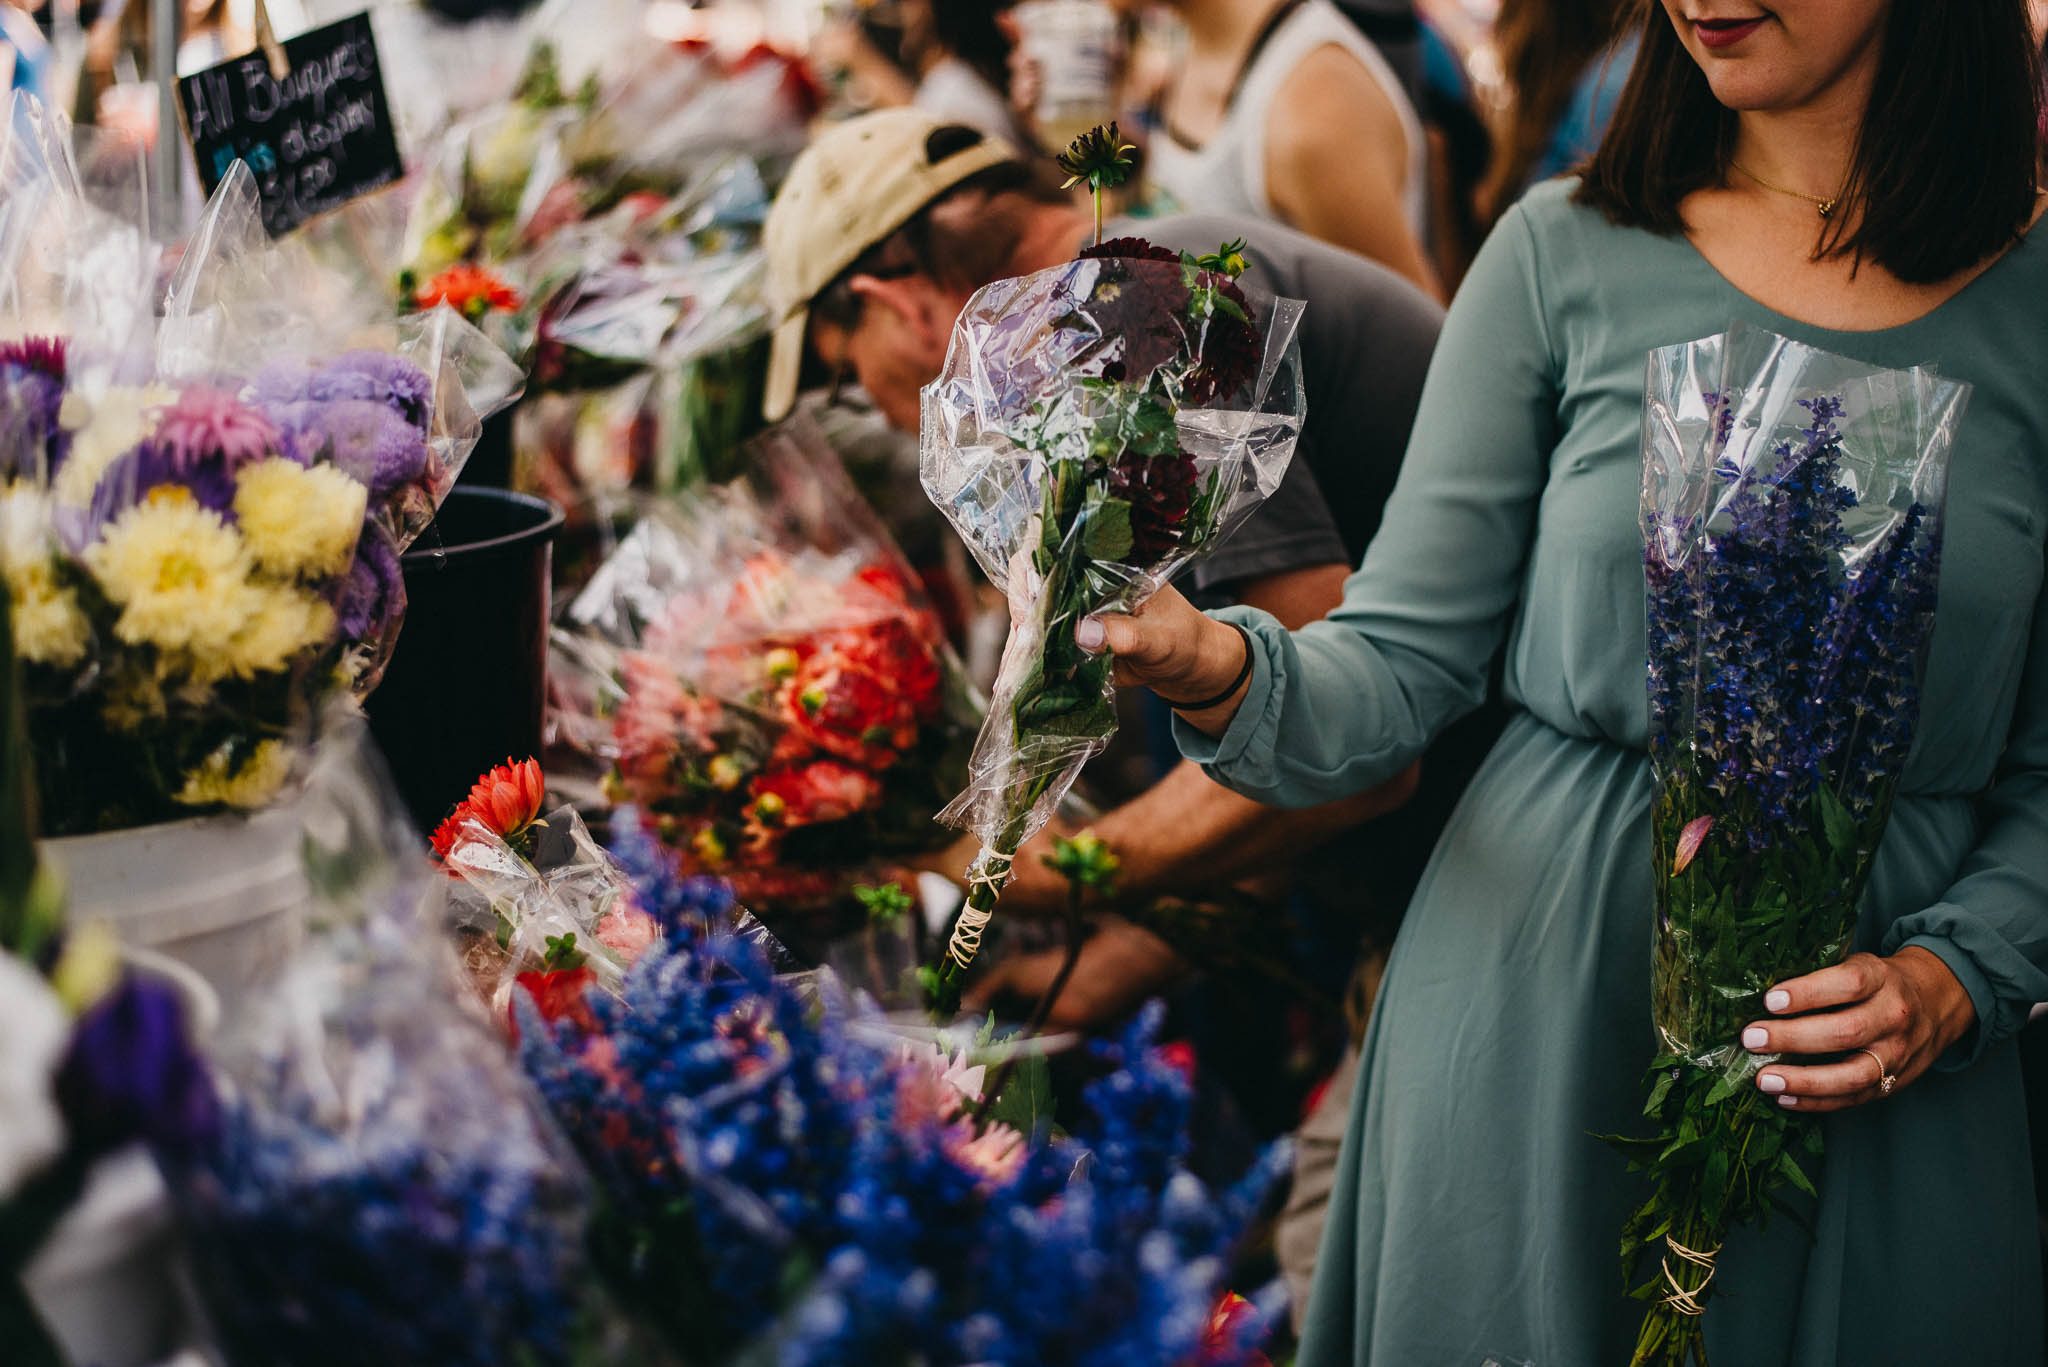 Picking out flowers at a Chicago farmers market